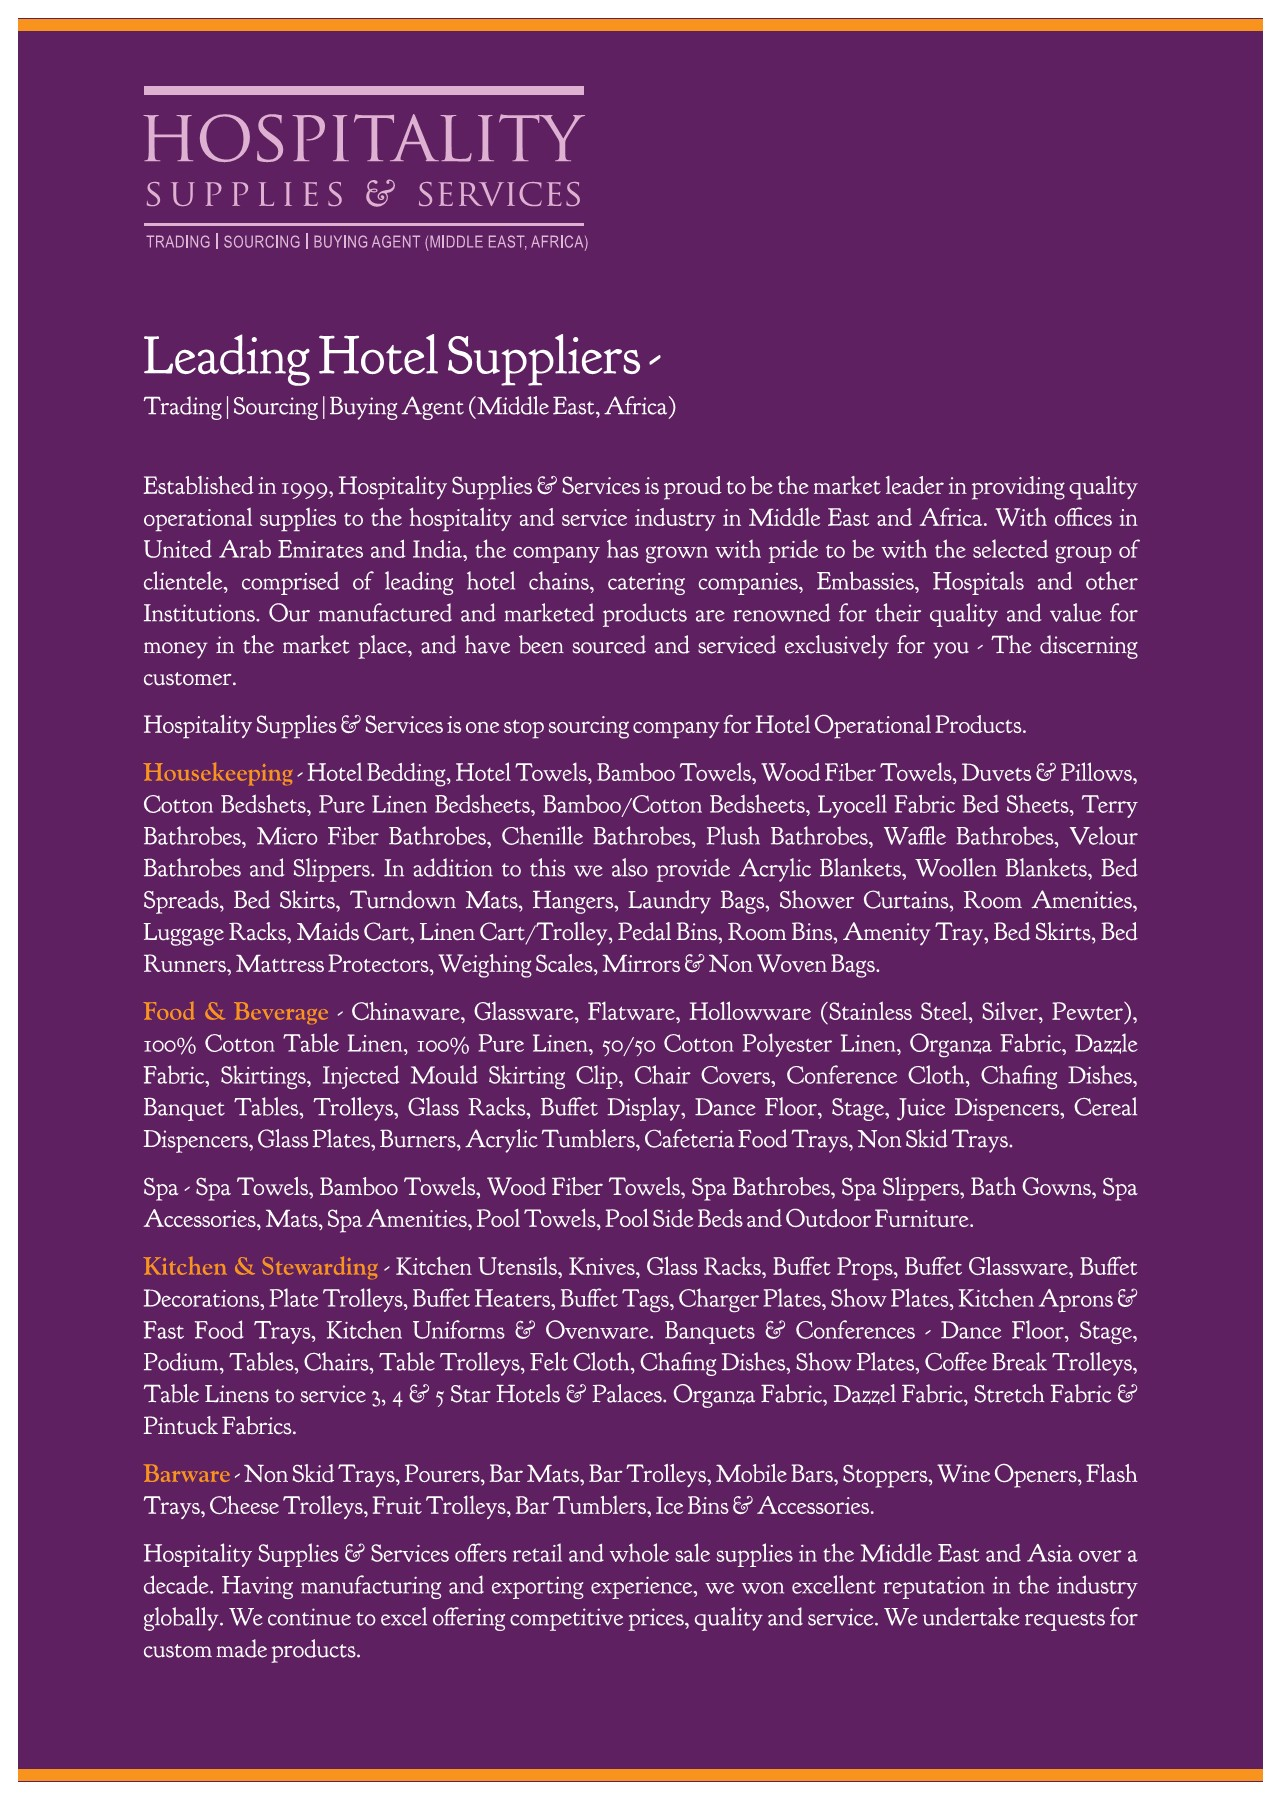 Hospitality Supplies & Services